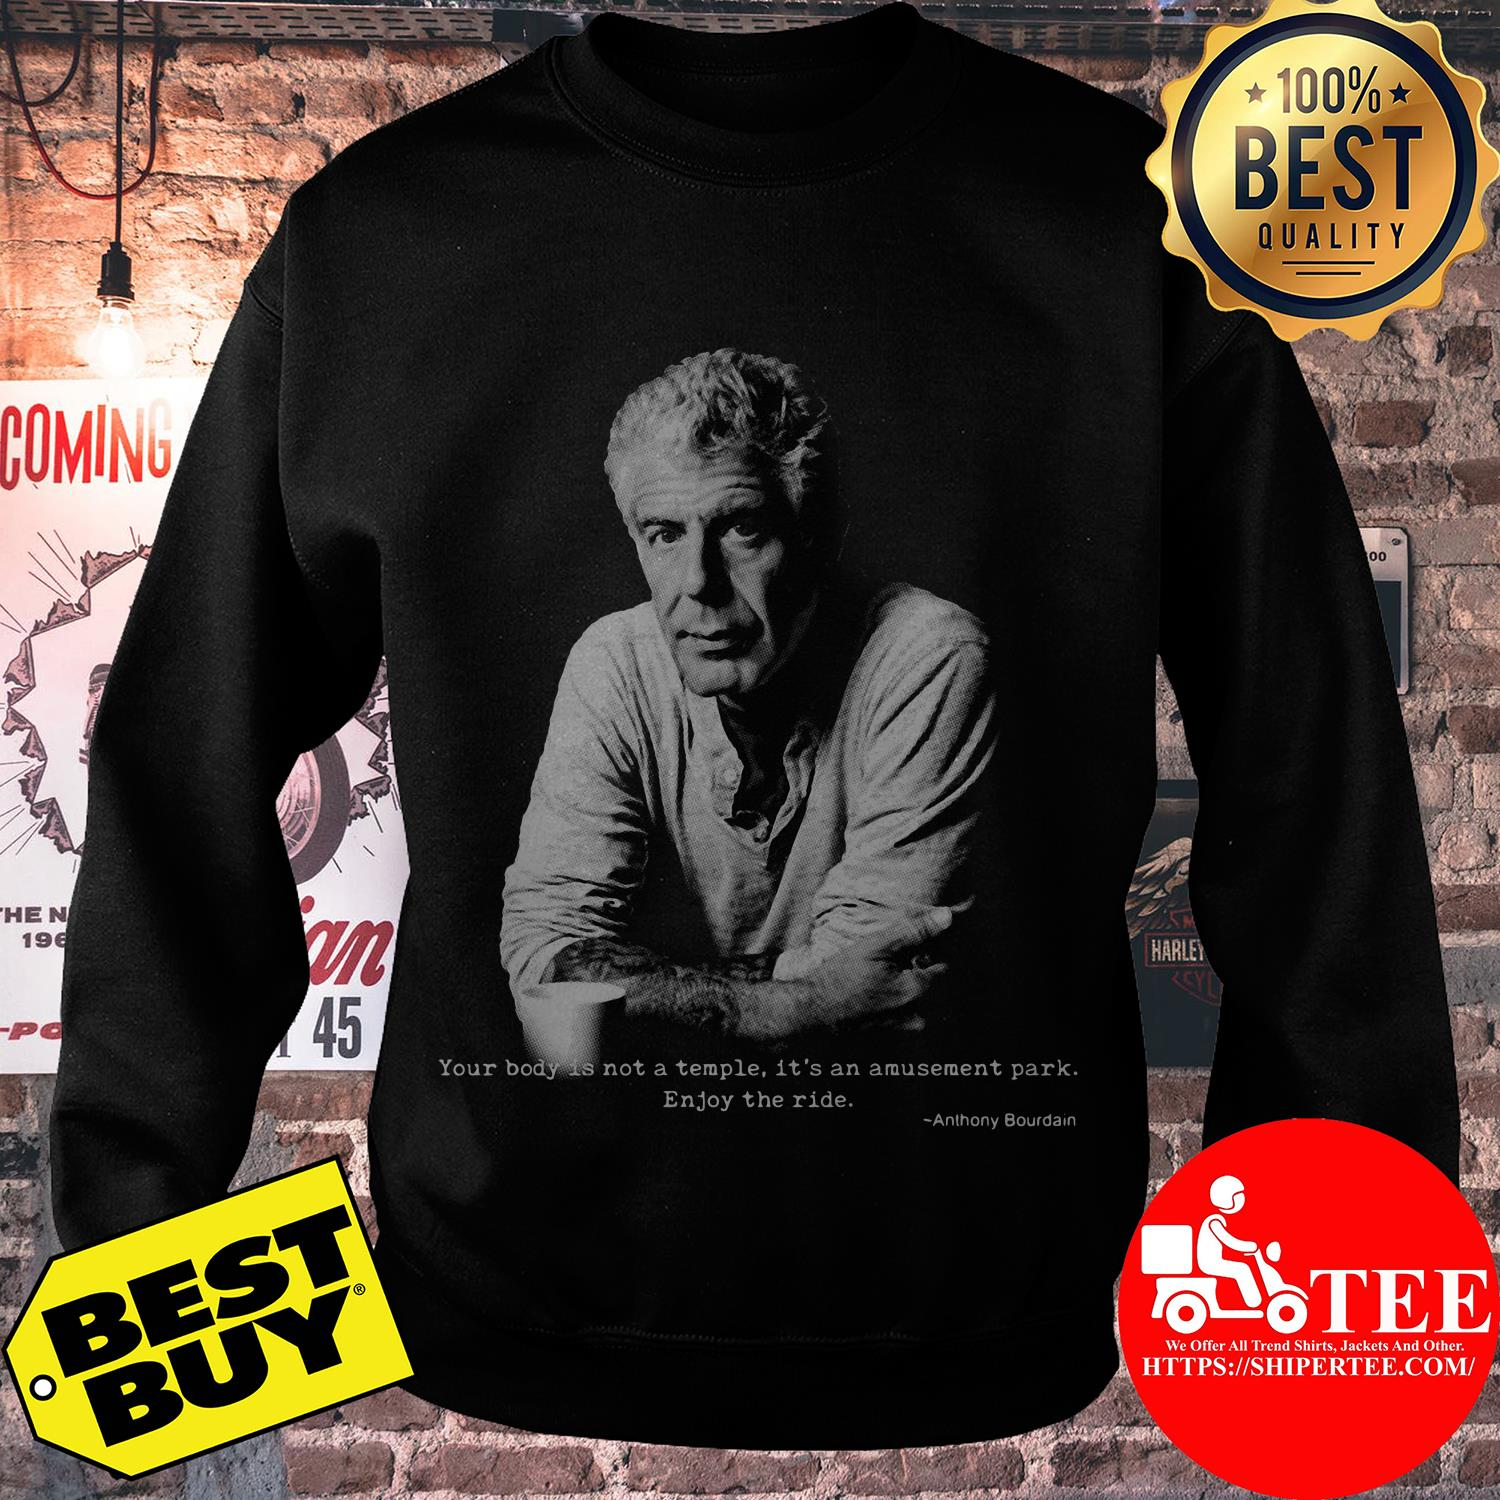 Anthony Bourdain Chef Poet your body is not a temple it's an amusement park sweatshirt